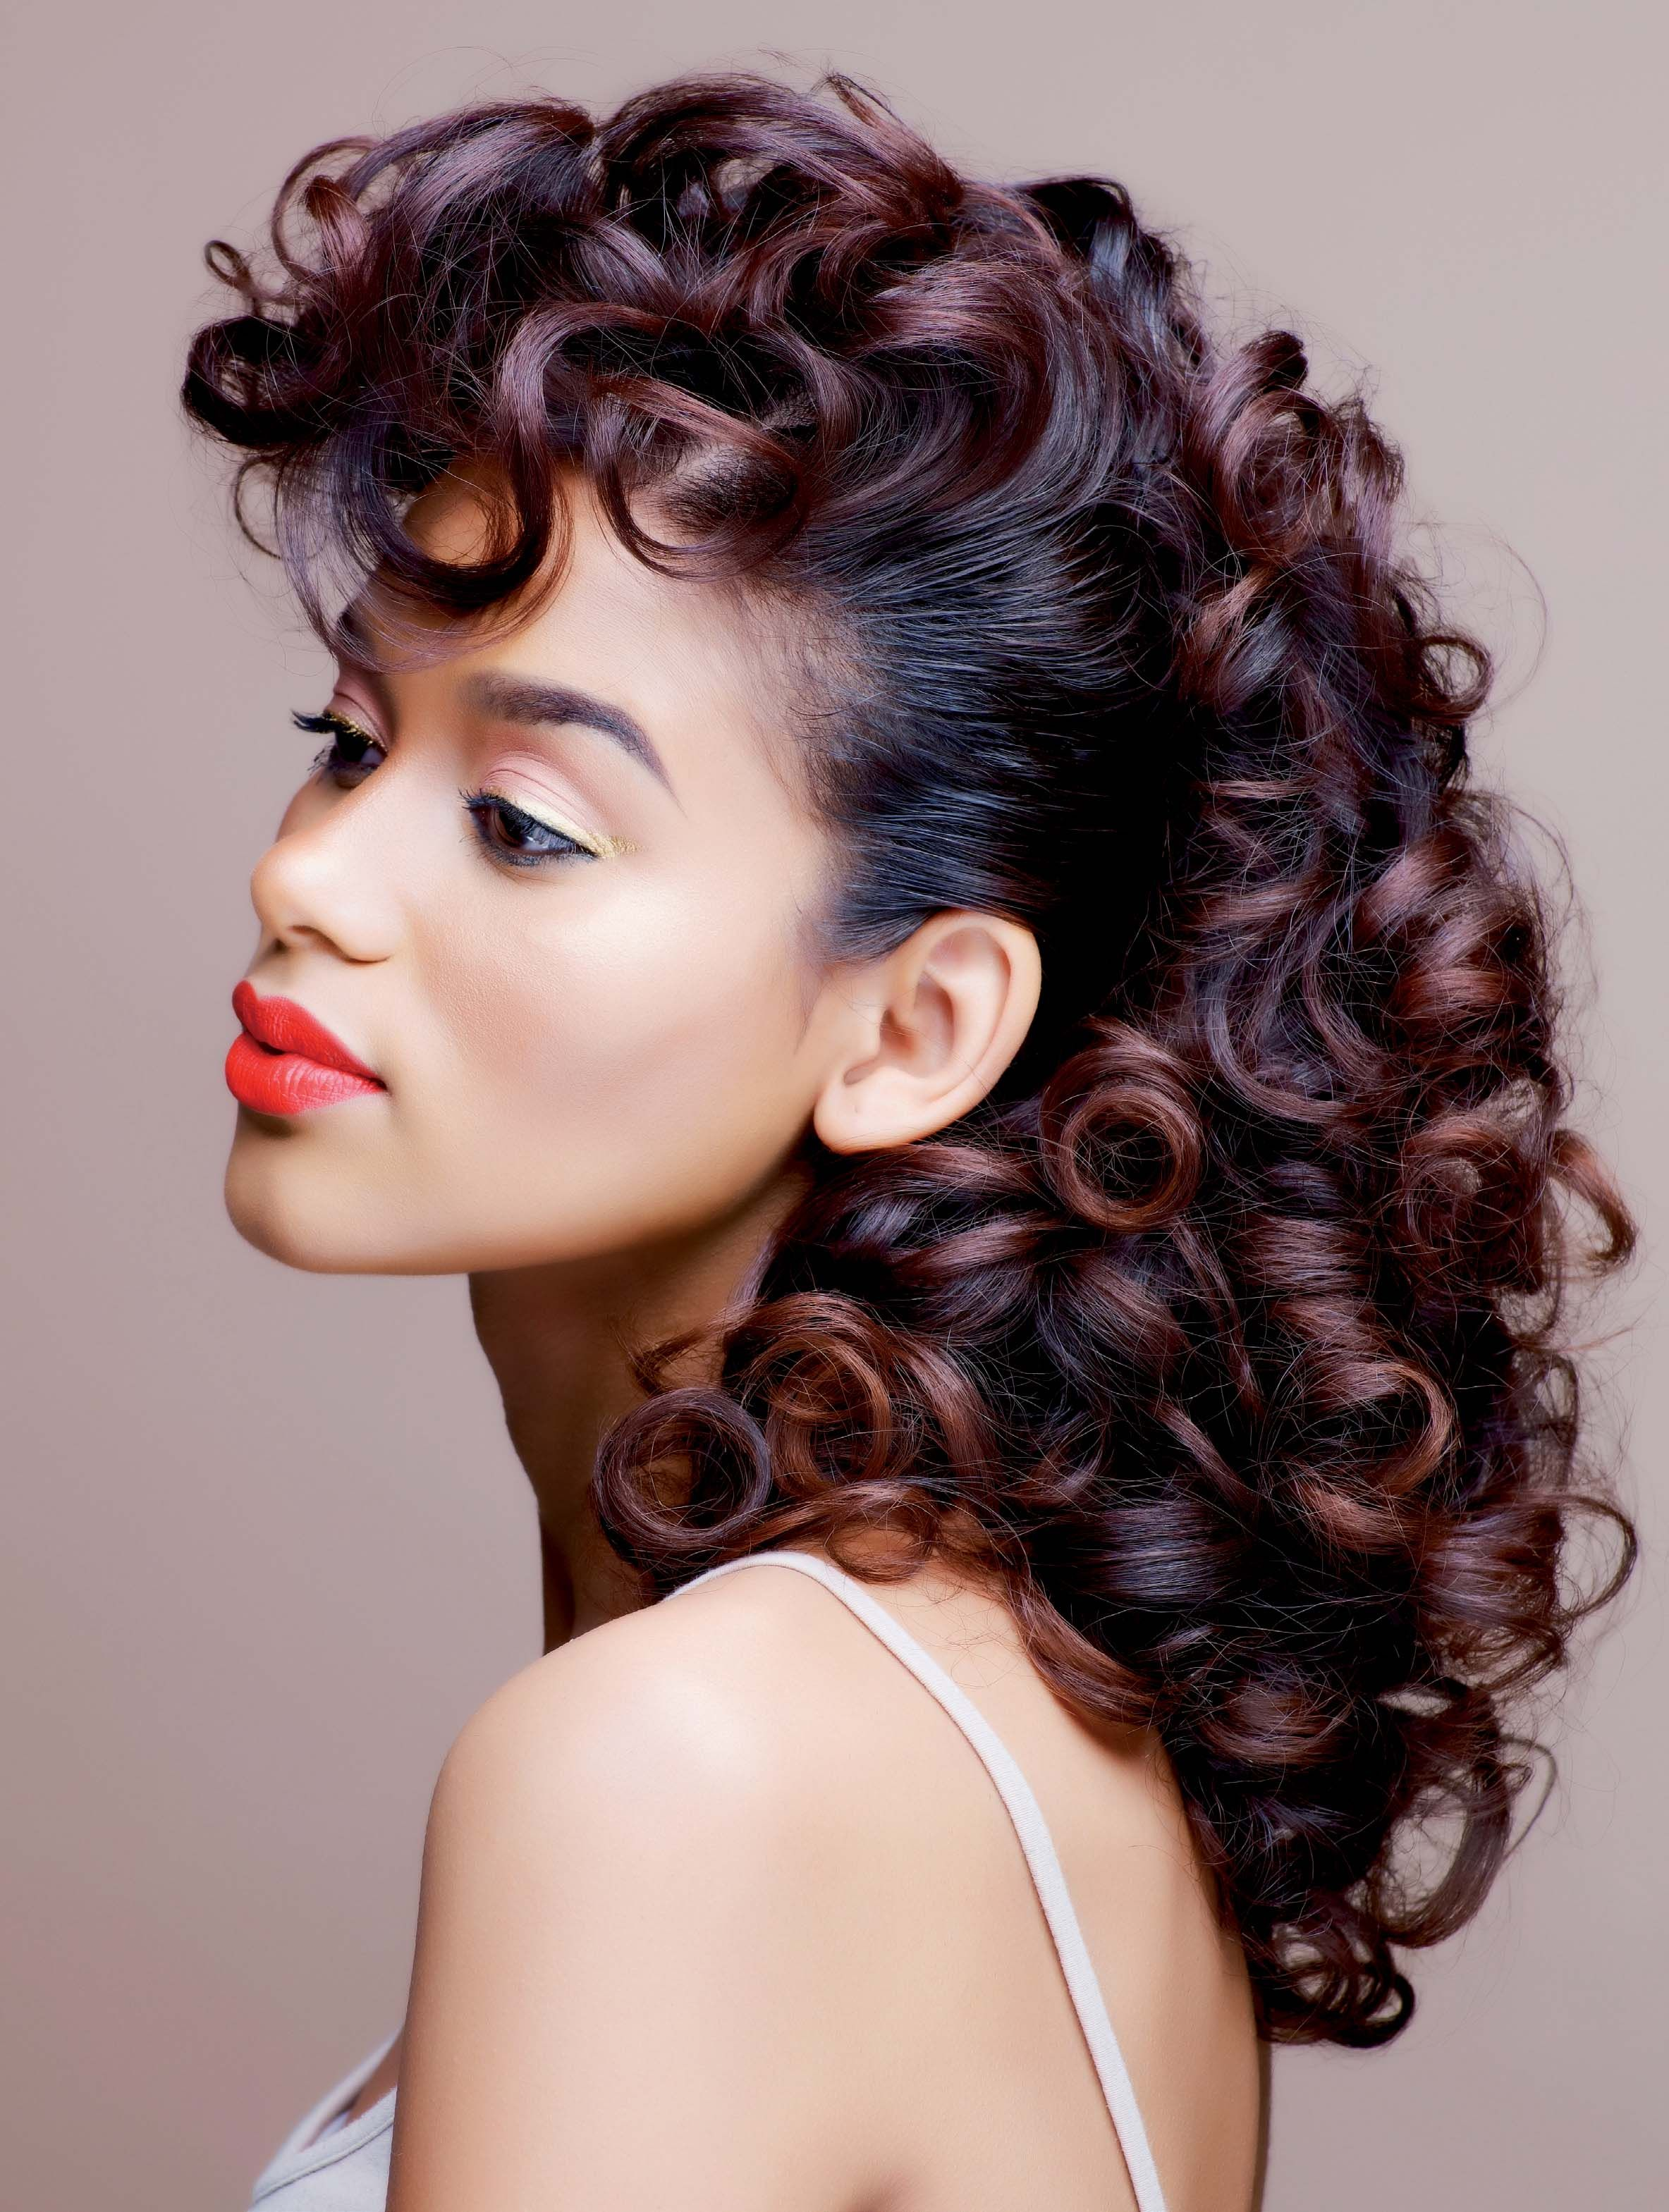 Sensational The Curly Set Beautiful Updo And Curly Hair Short Hairstyles For Black Women Fulllsitofus